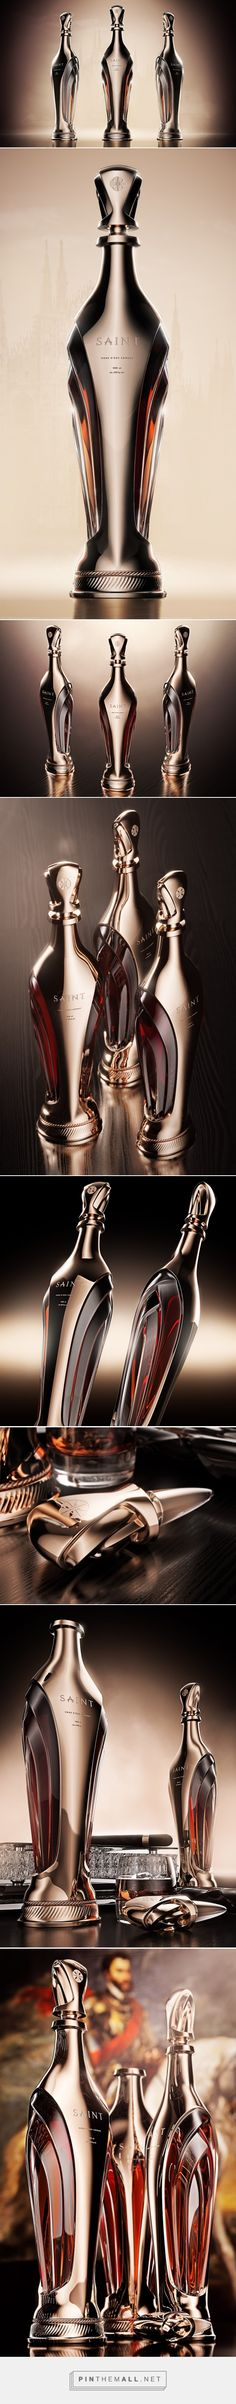 Saint - Luxury Cognac Bottle  packaging design #concept by Ivan Venkov - http://www.packagingoftheworld.com/2017/10/saint-luxury-cognac-bottle-concept.html